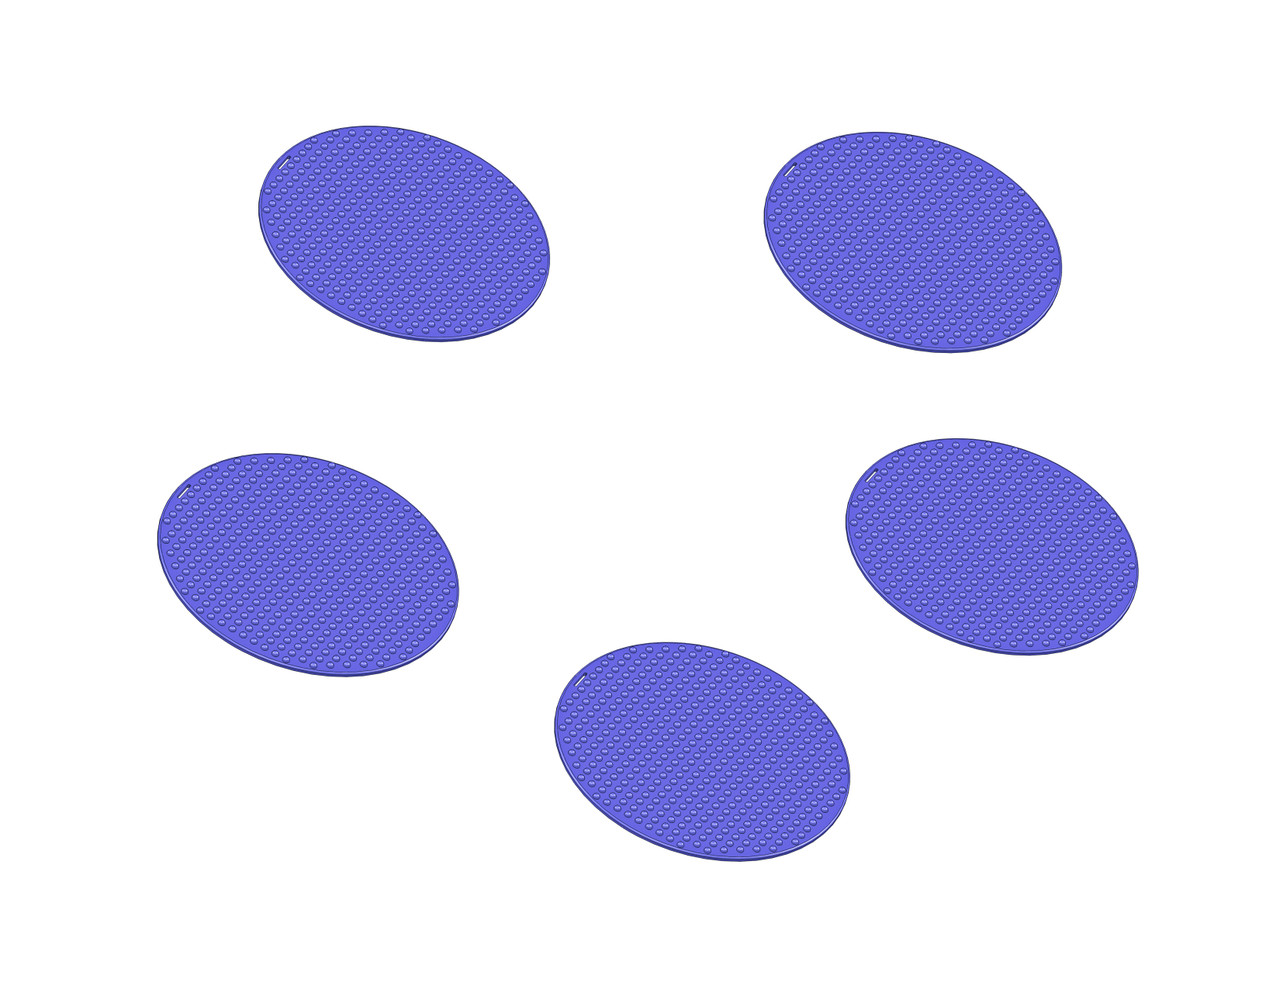 Busy Blue Spot Classroom Circle Time Seat Pack